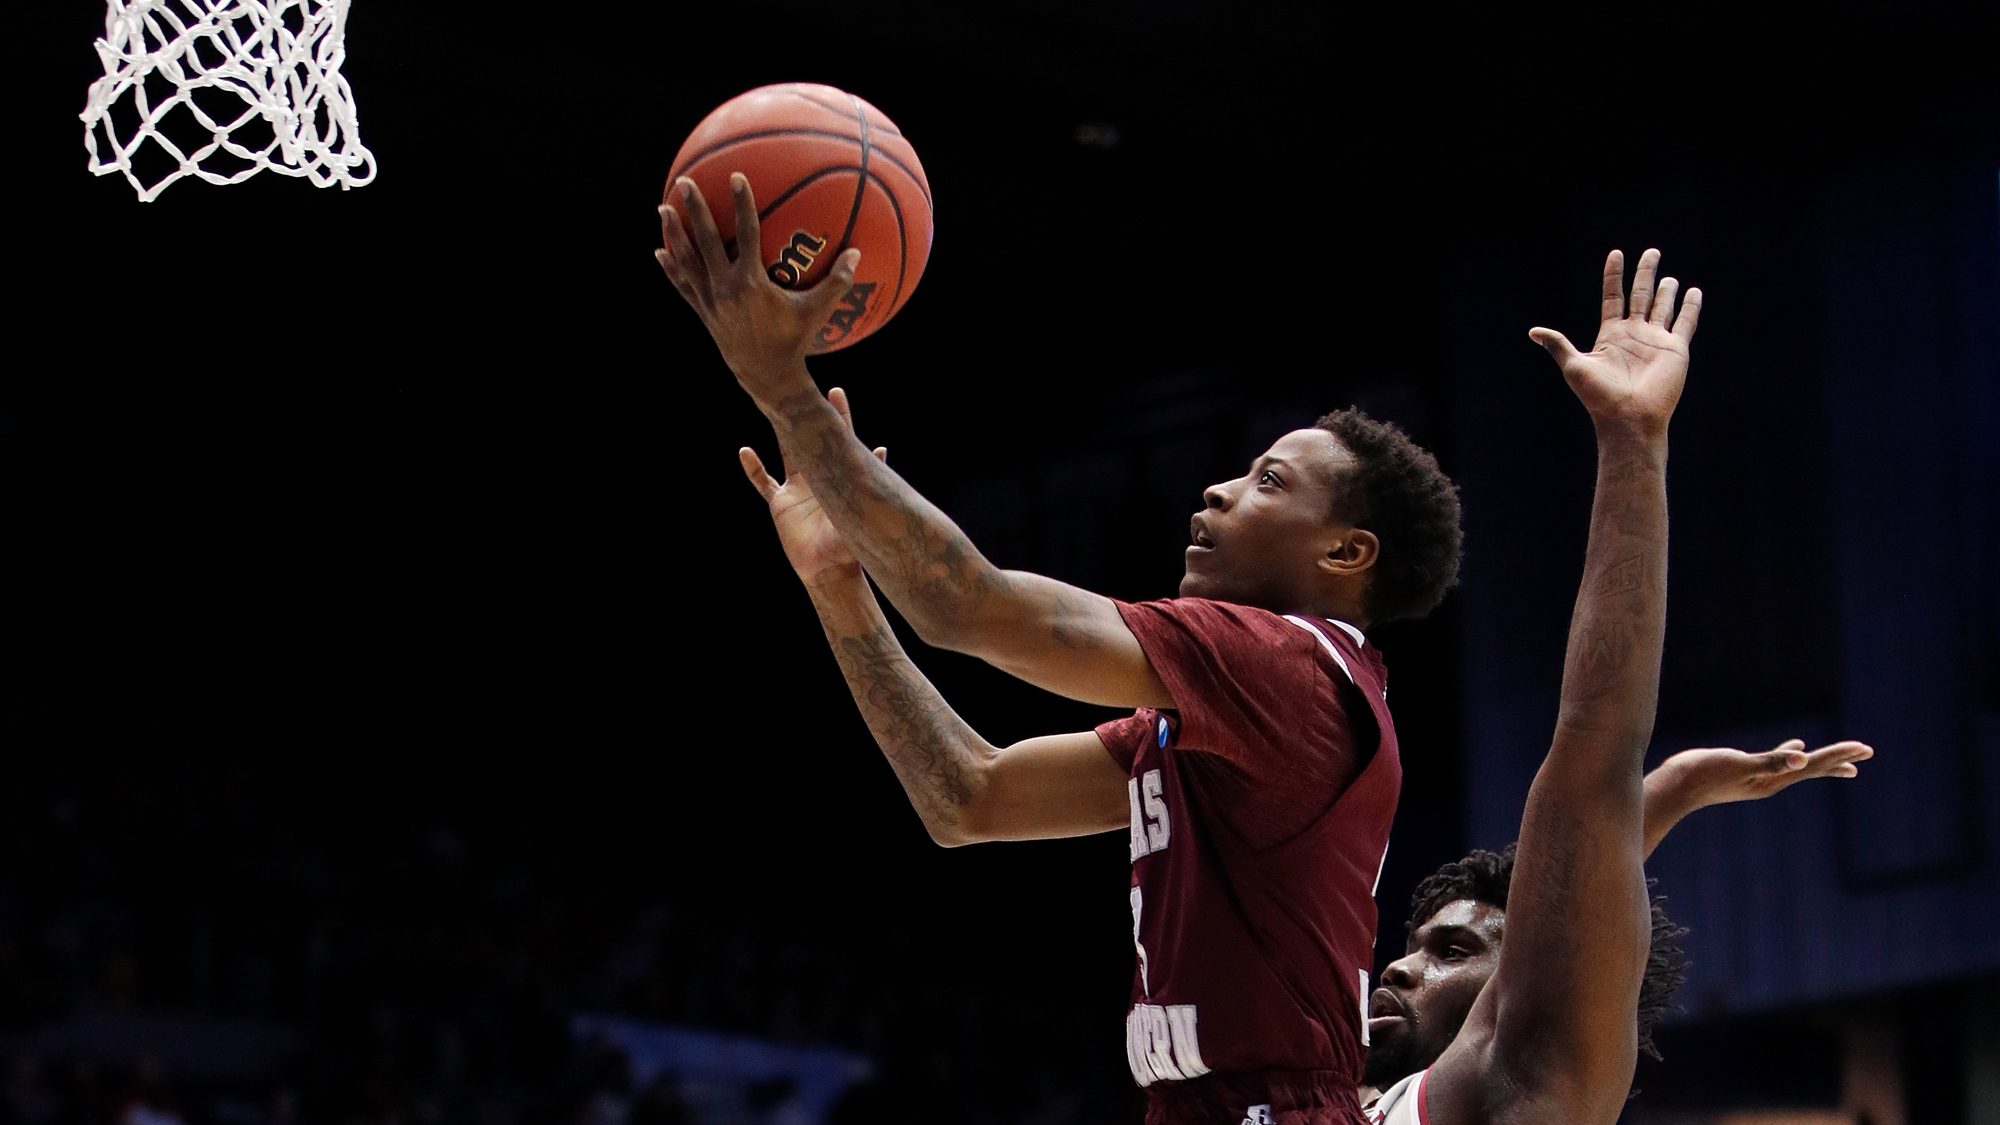 Texas Southern v North Carolina Central